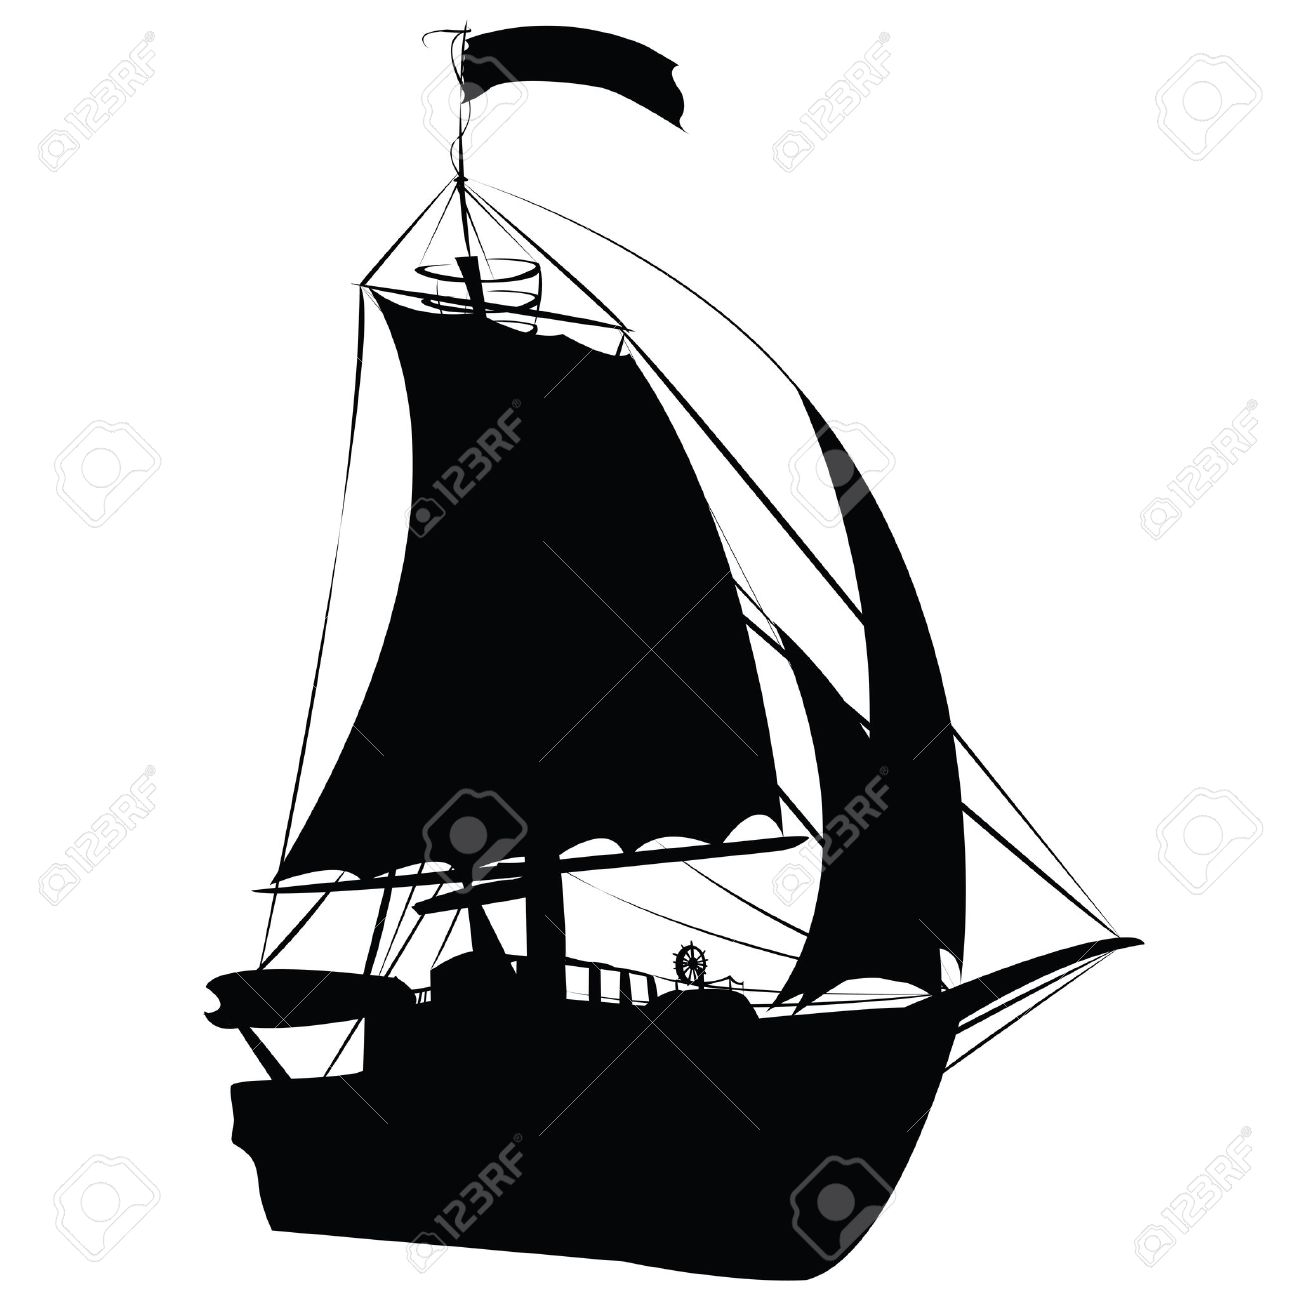 small sailing ship silhouette isolated on white background